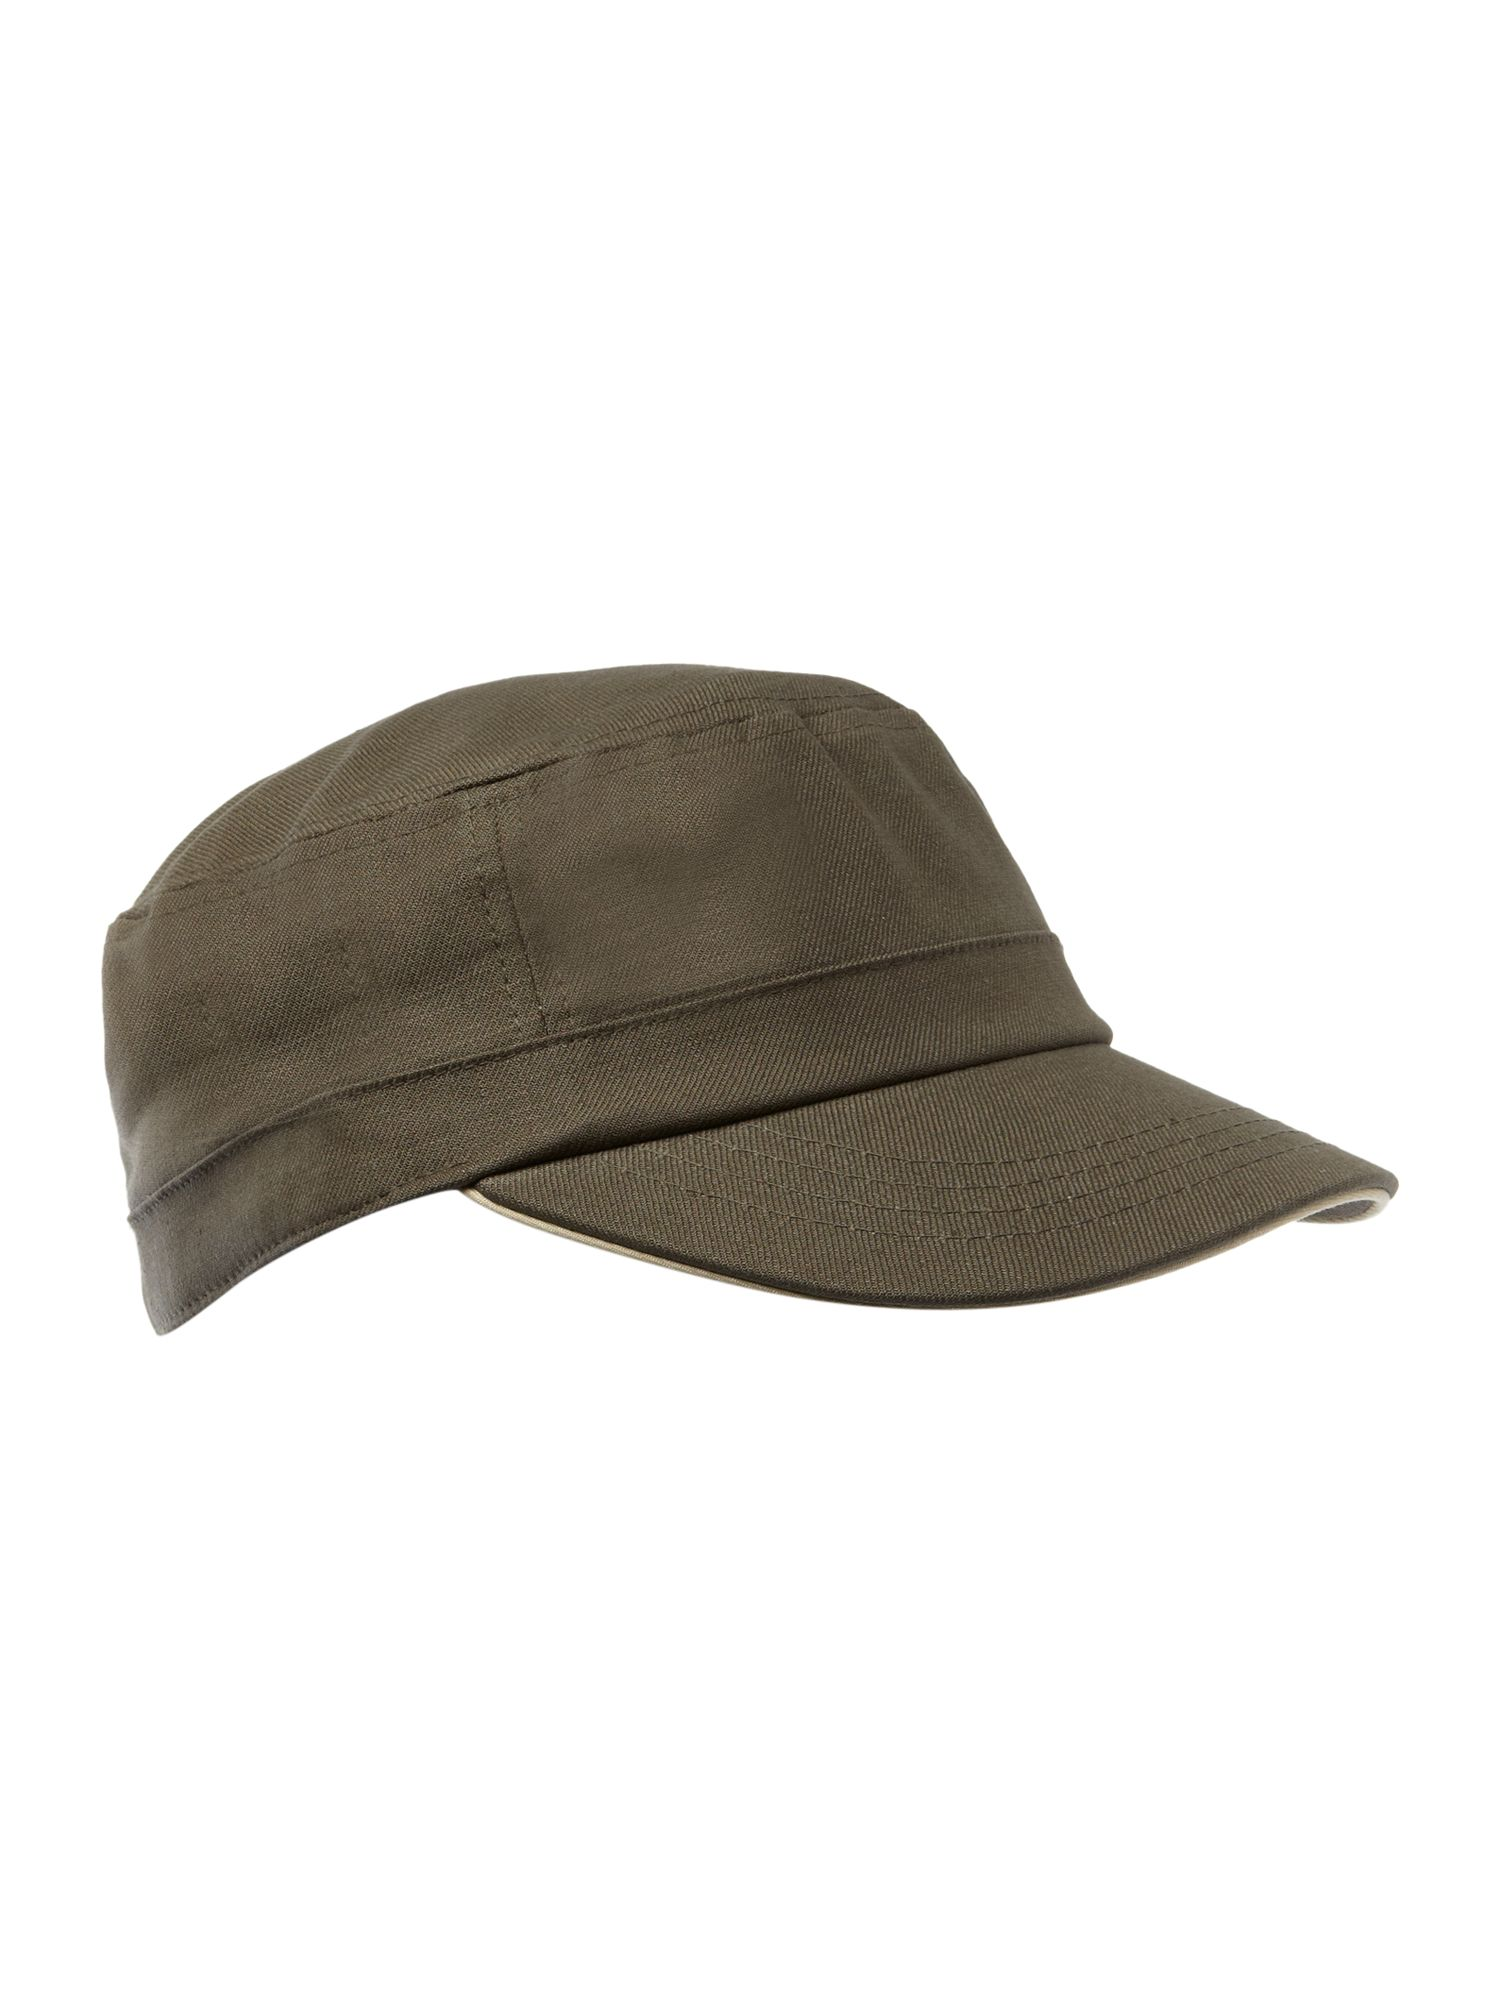 fred perry military cap in brown for men khaki lyst. Black Bedroom Furniture Sets. Home Design Ideas